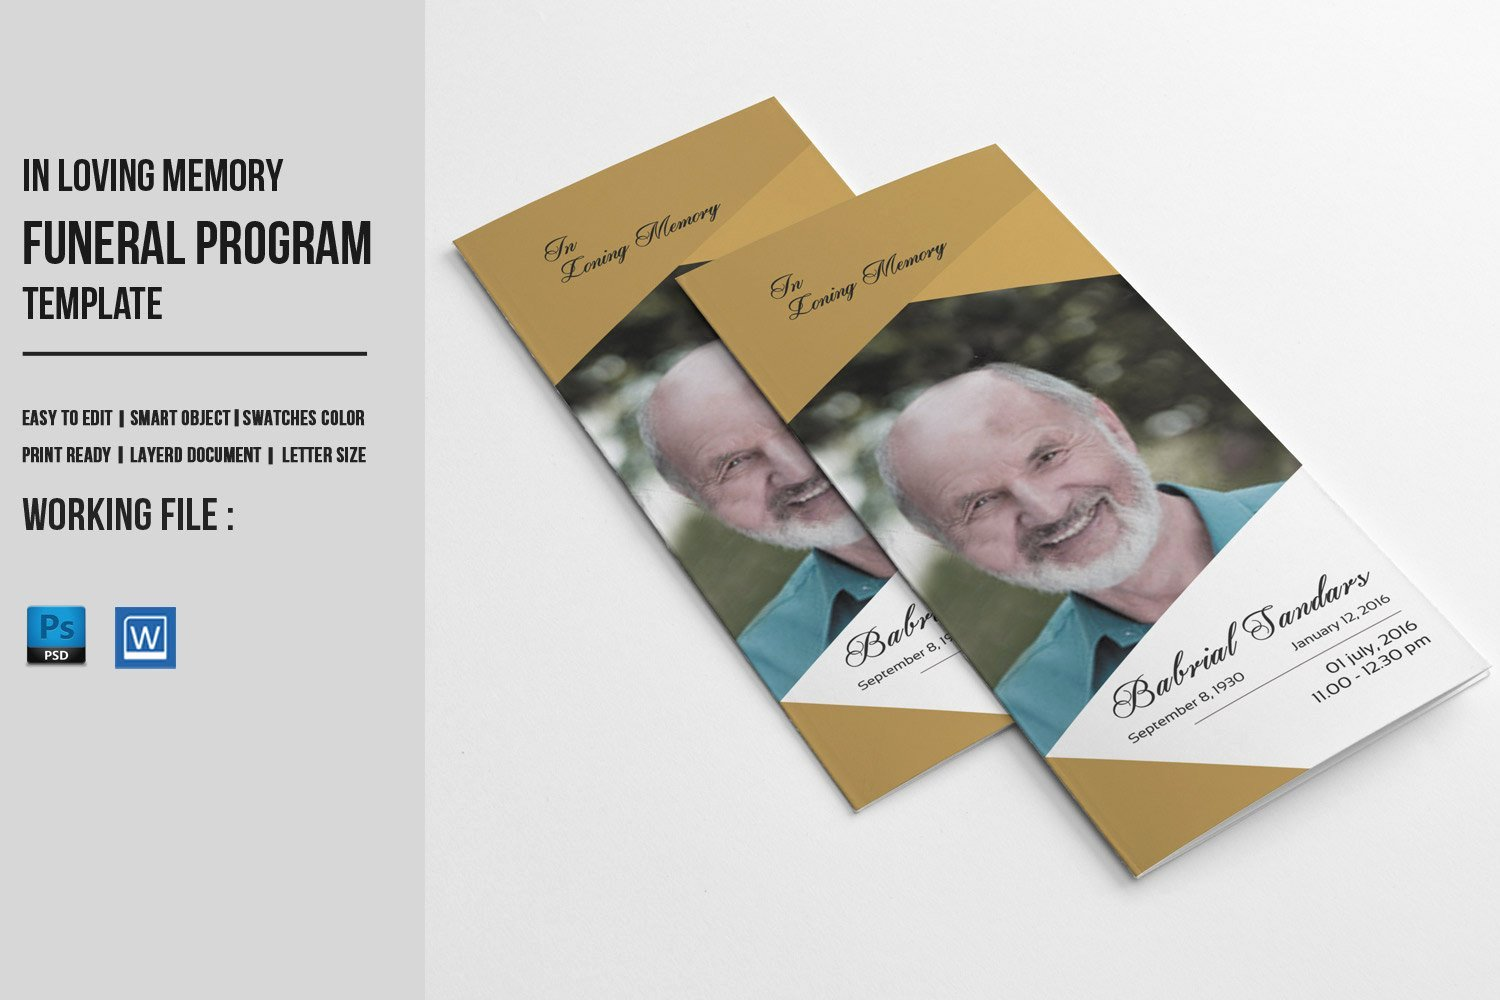 In Memory Of Template Lovely Trifold Funeral Program Template Memorial Obituary Service